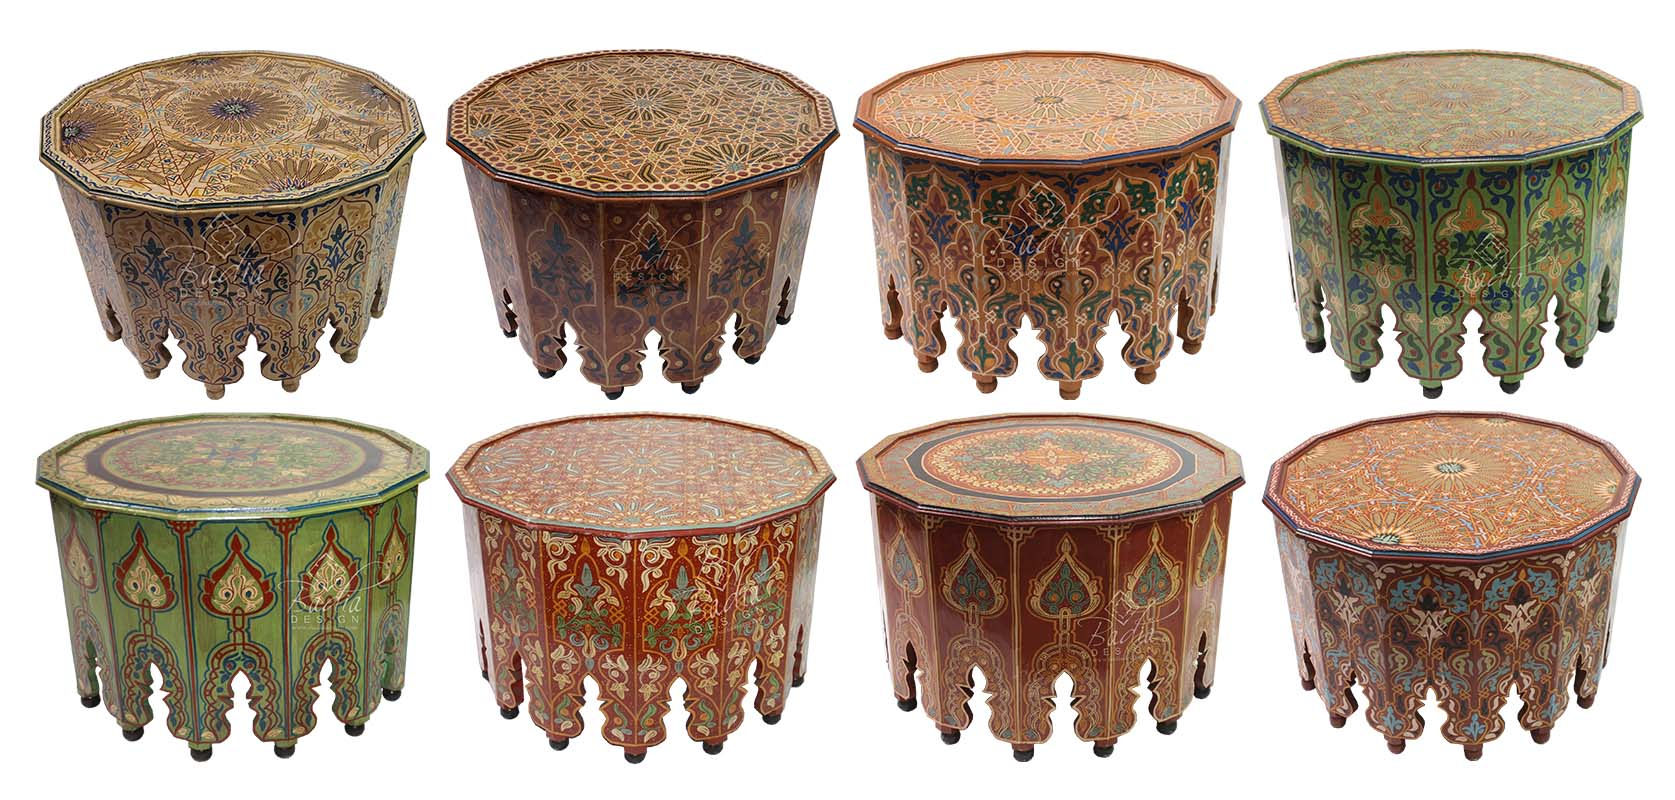 moroccan-hand-painted-coffee-table-hp-ct001.jpg